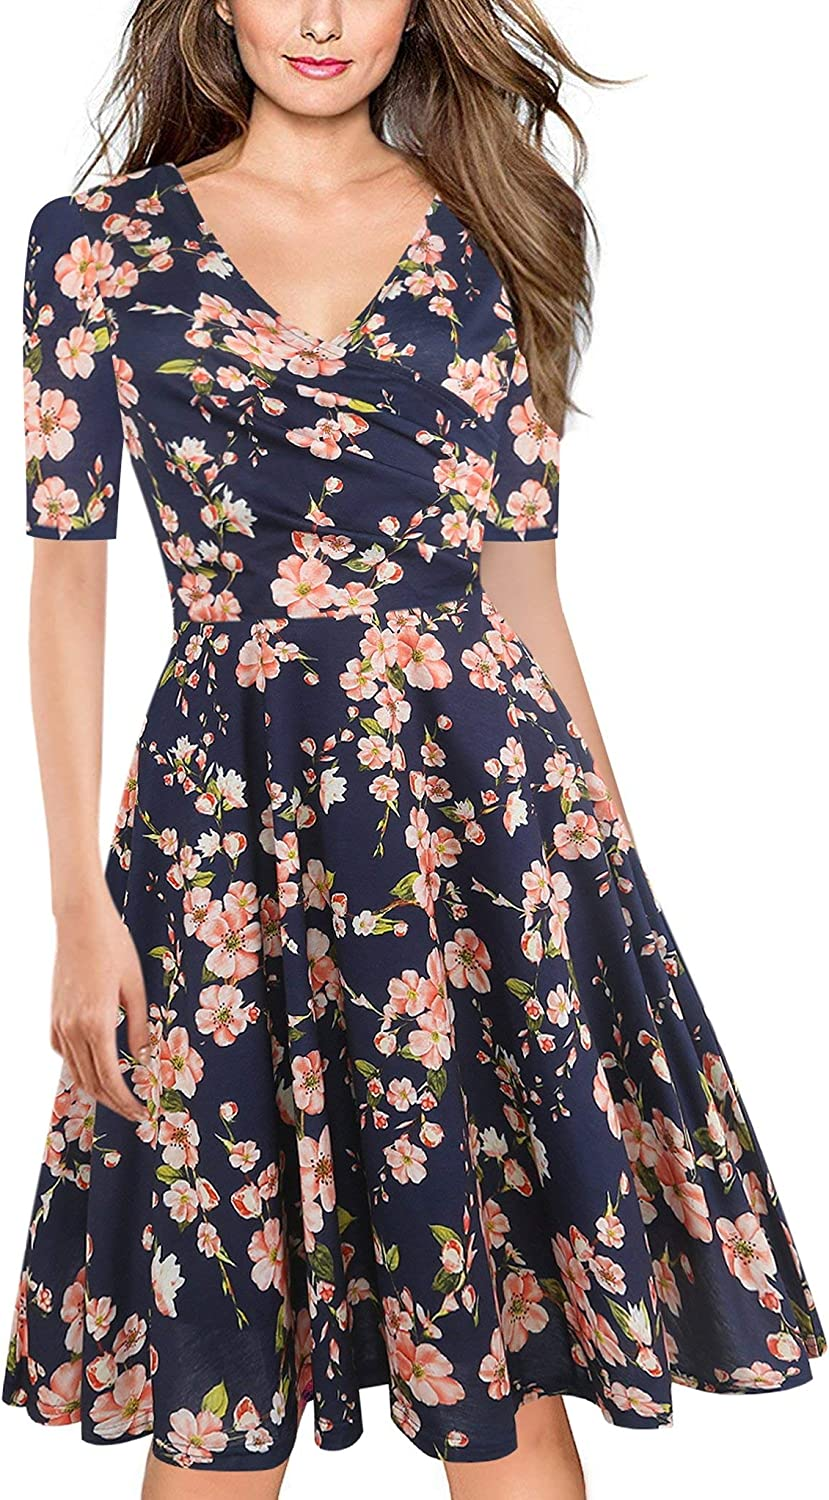 Brave pinkmary Women Floral Print Ruffle V Neck Dress Short Sleeve Knee Length Dresses Ladies Casual ALine Dress Vestidos